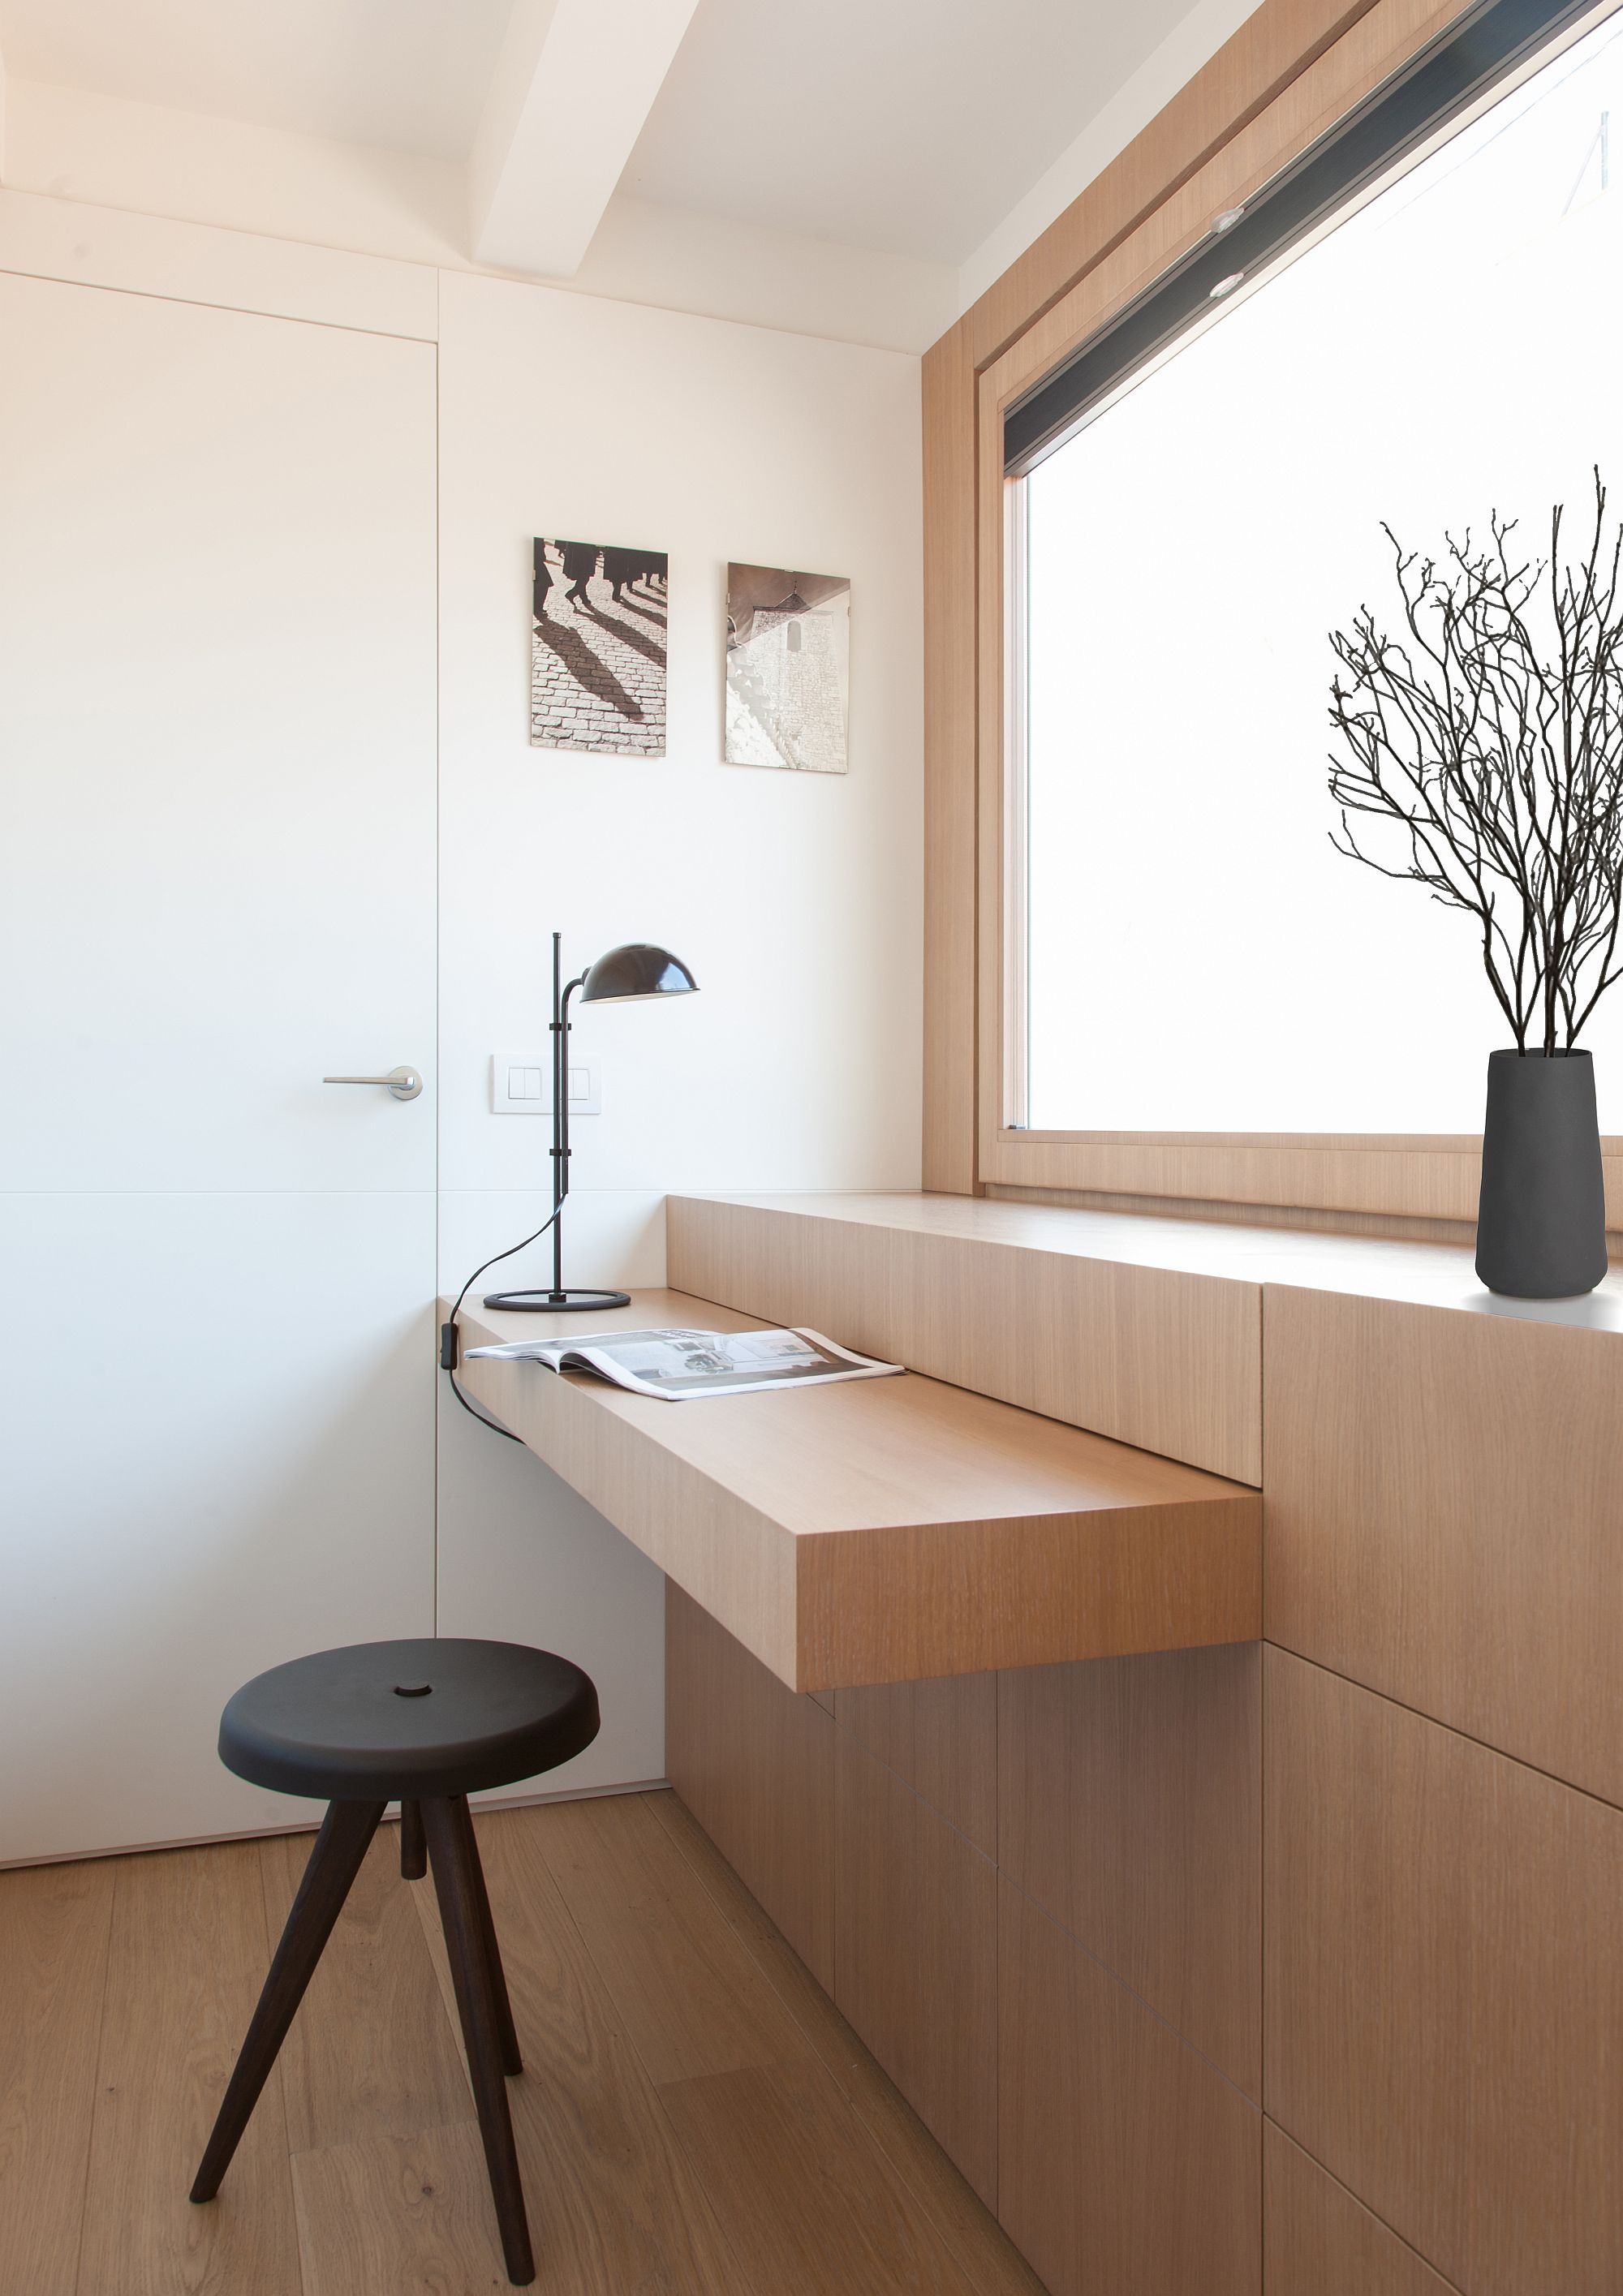 Custom foldable tables and wall-mounted additions inside the home